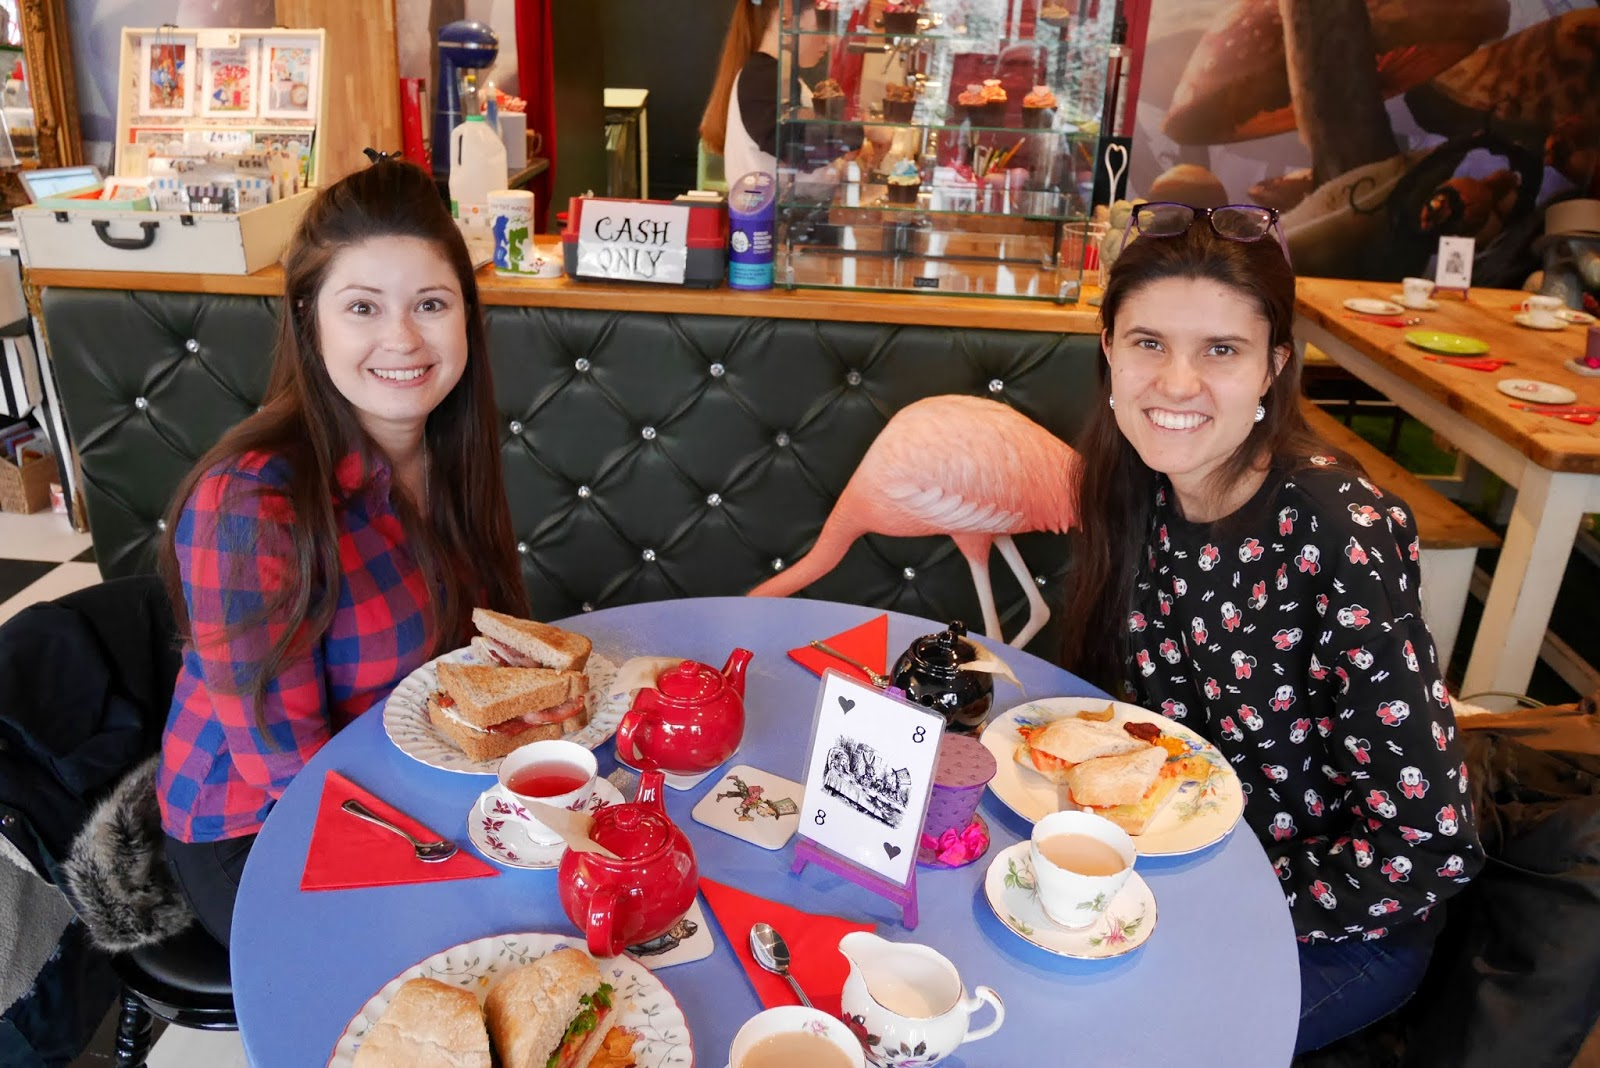 Sarah and Kat Last at the Alice and the Hatter tearoom in Herne Bay, Kent